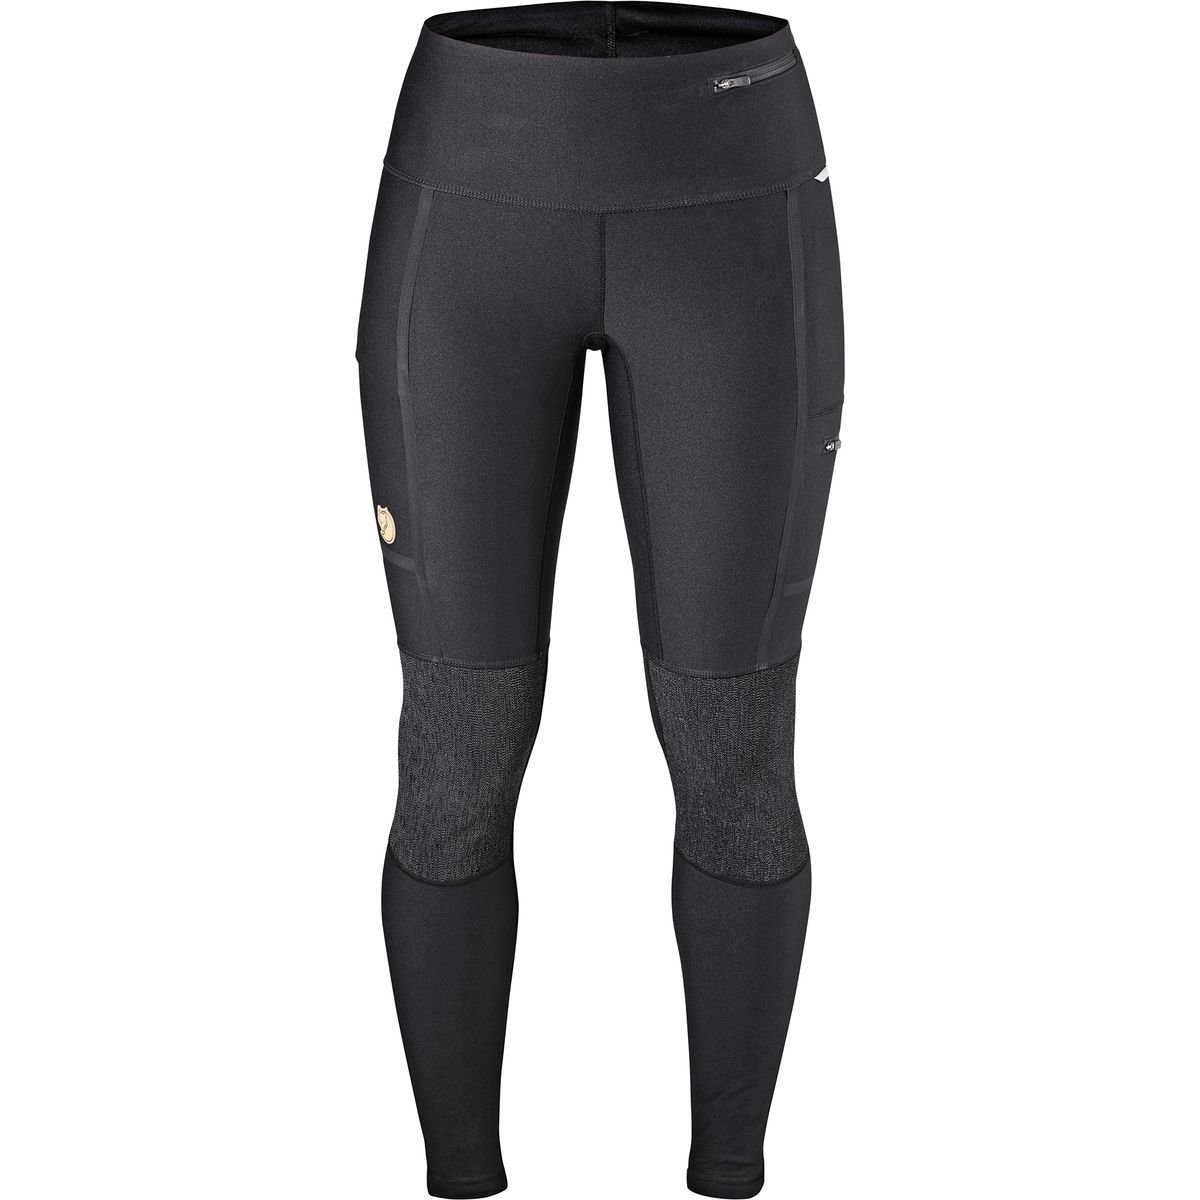 Fjallraven Women's Abisko Trekking Tights, Black, M